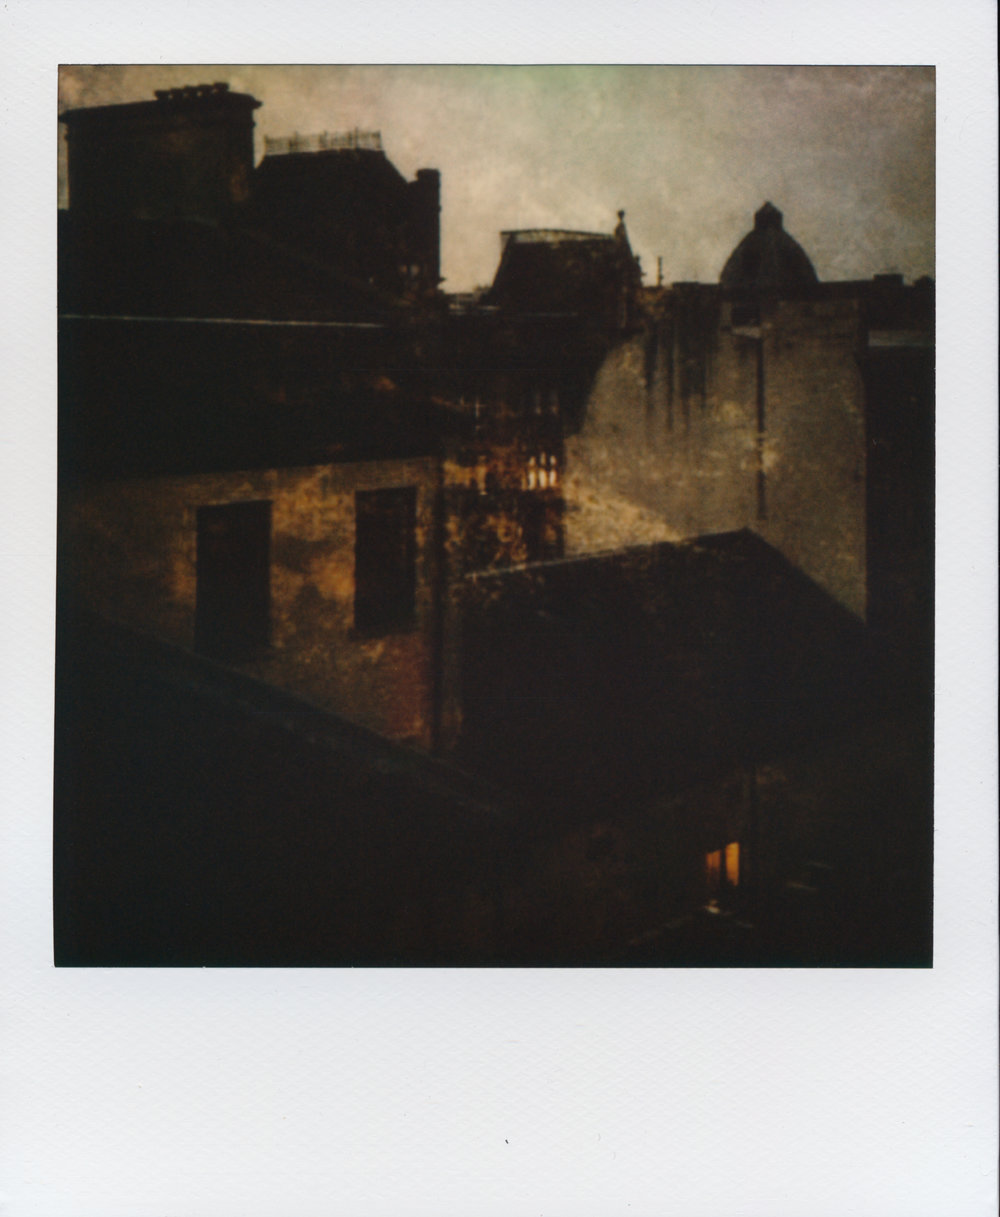 Glasgow By Night | Impossible Project Instant Lab | Impossible Project 70 Color Film | Per Forsström